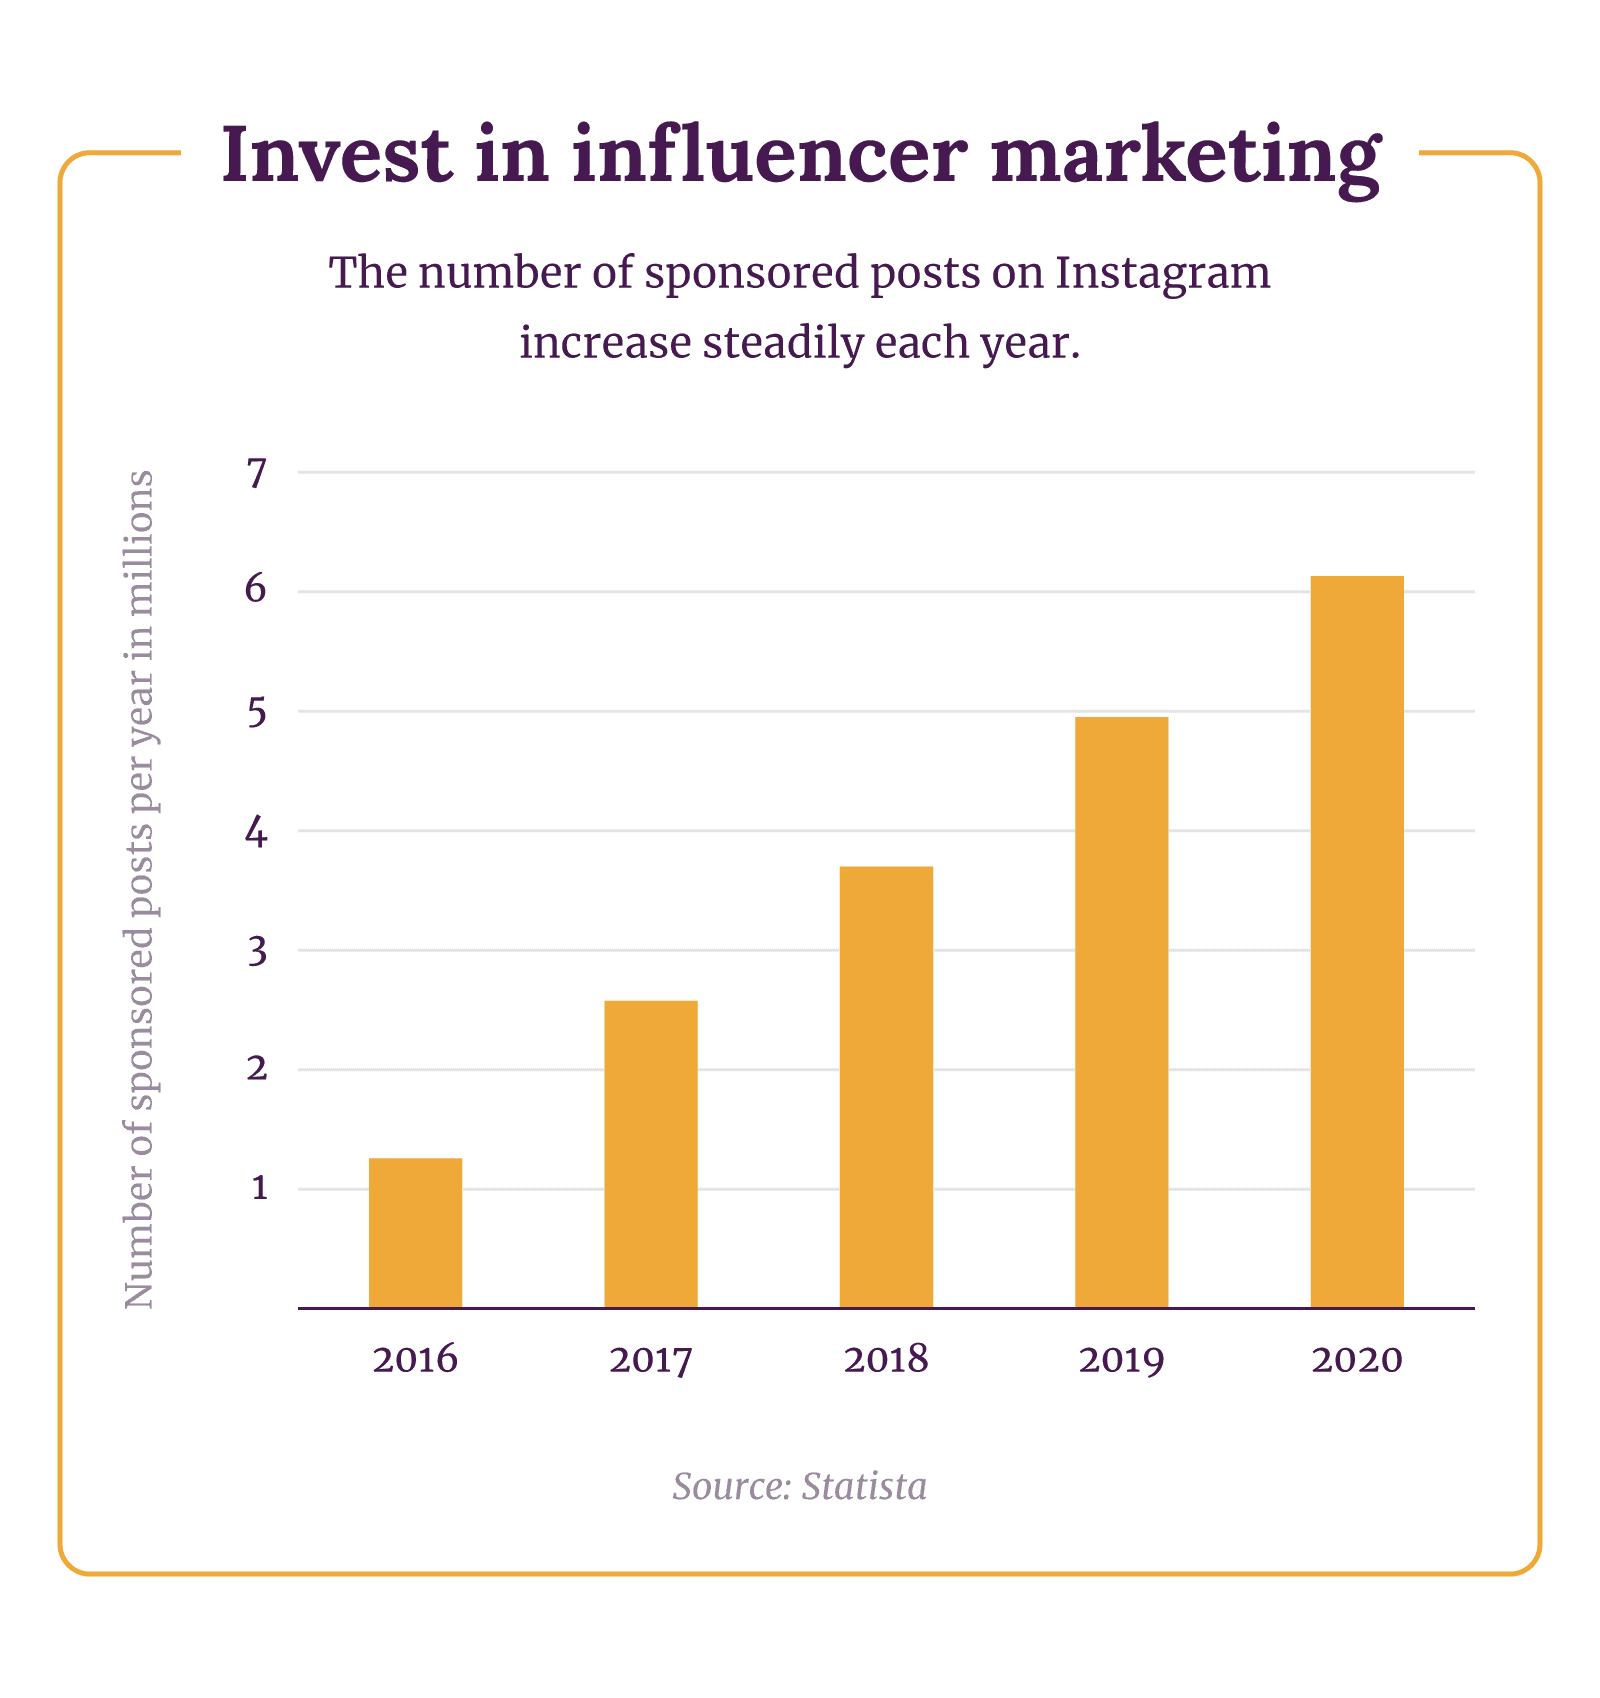 Invest in influencer marketing. The number of sponsored posts on Instagram increase steadily each year, from just over 1 million in 2016 to over 6 million in 2020.